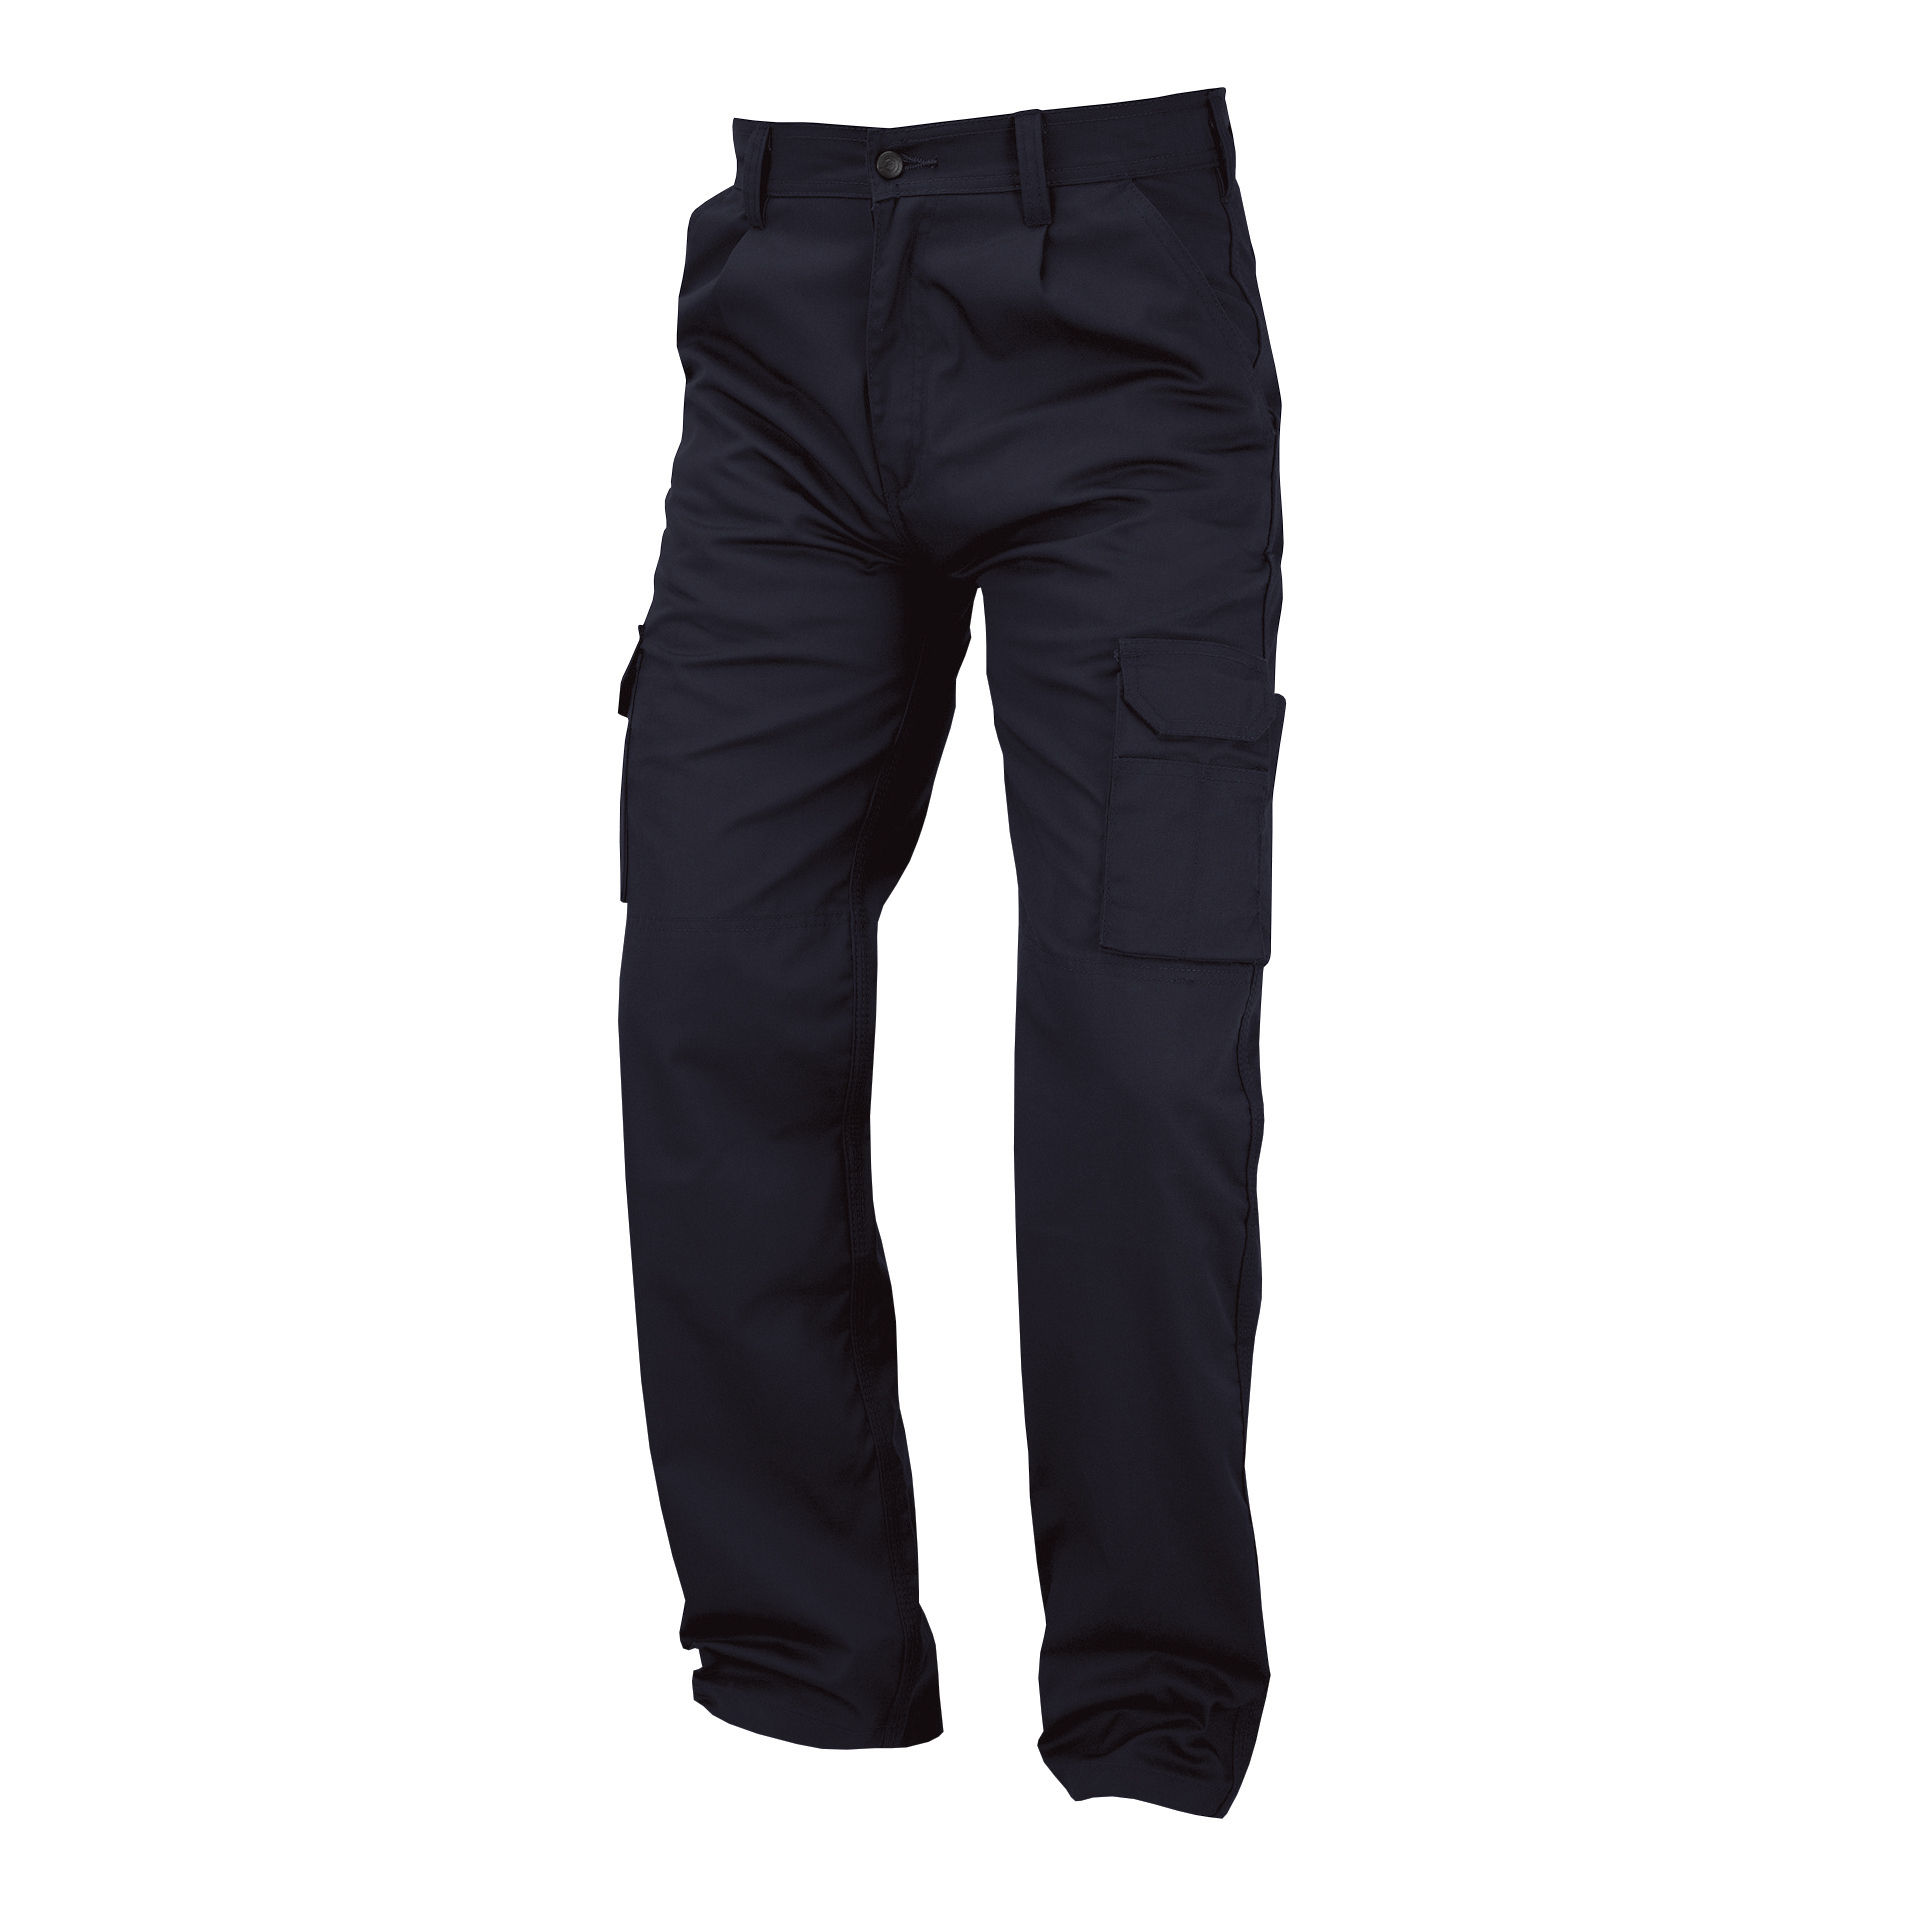 Combat Trousers Multifunctional 48in Regular Navy Blue Ref PCTHWN48 *Approx 3 Day Leadtime*